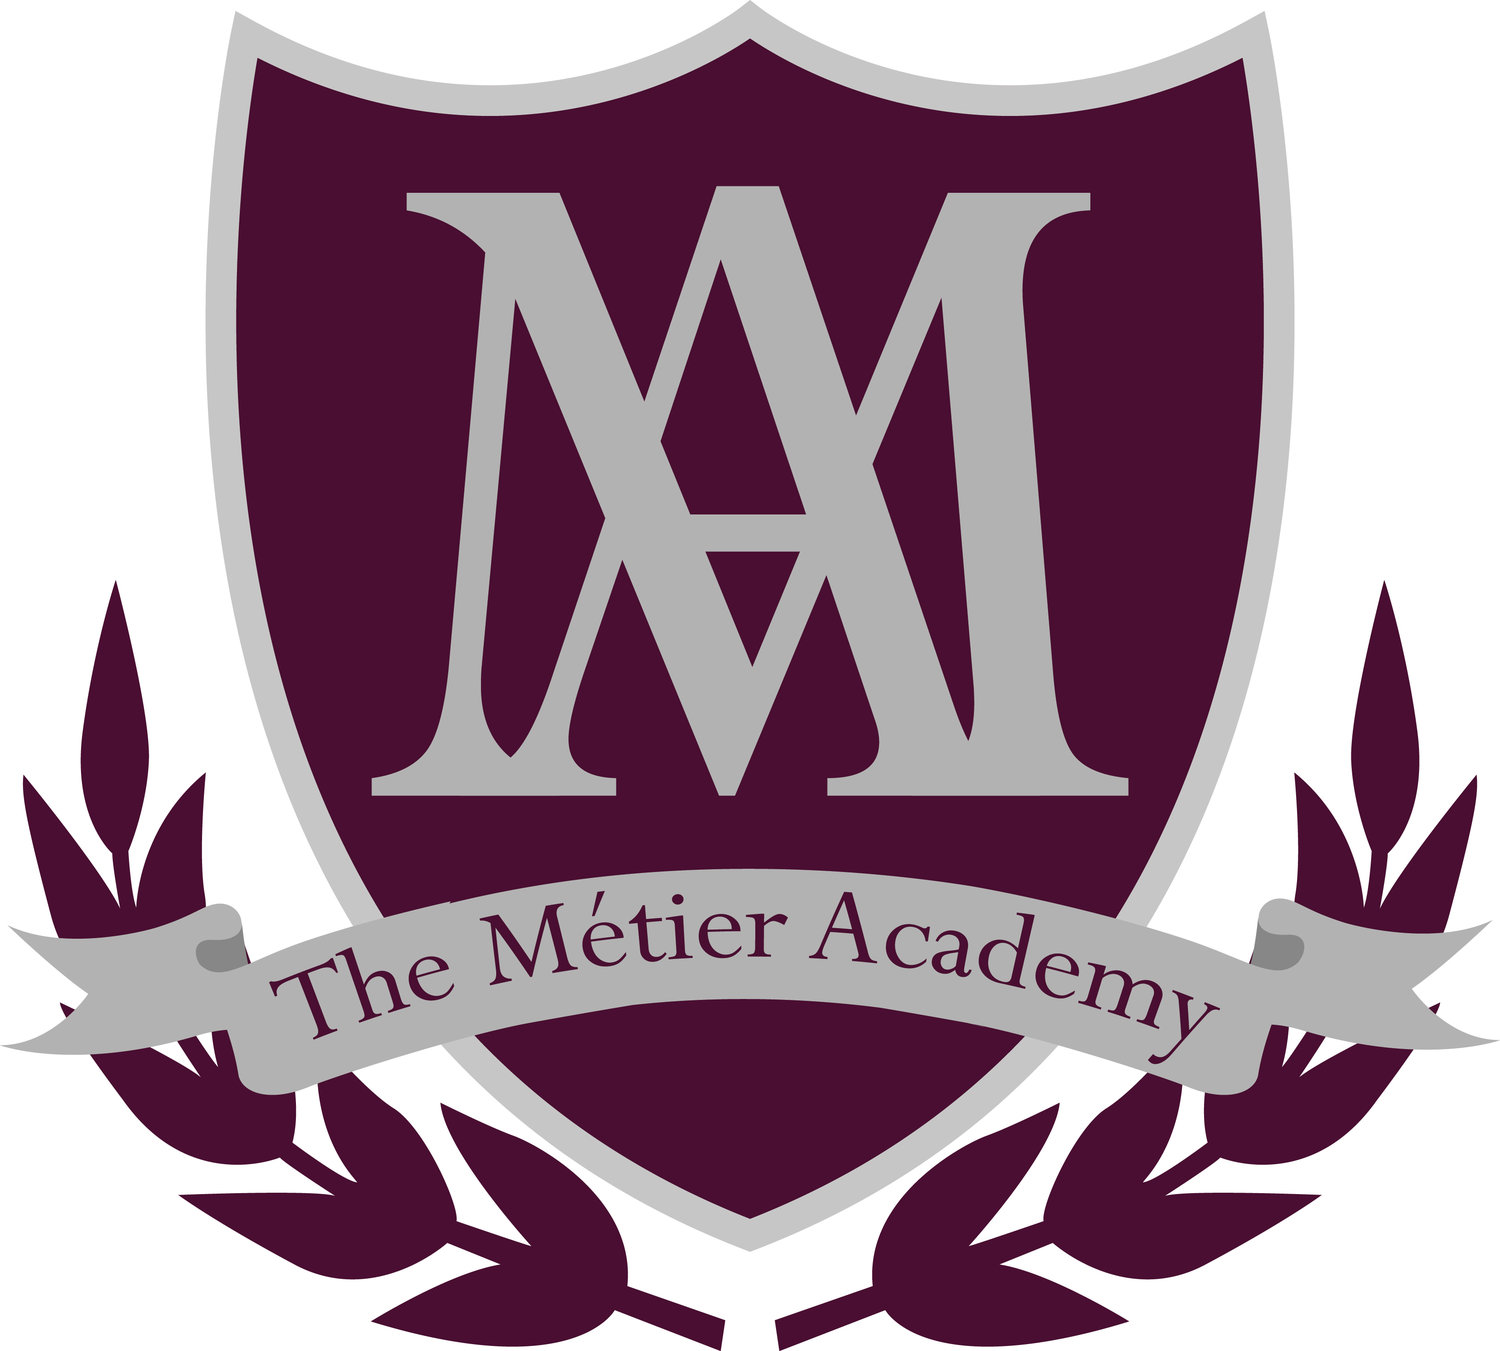 The Metier Academy